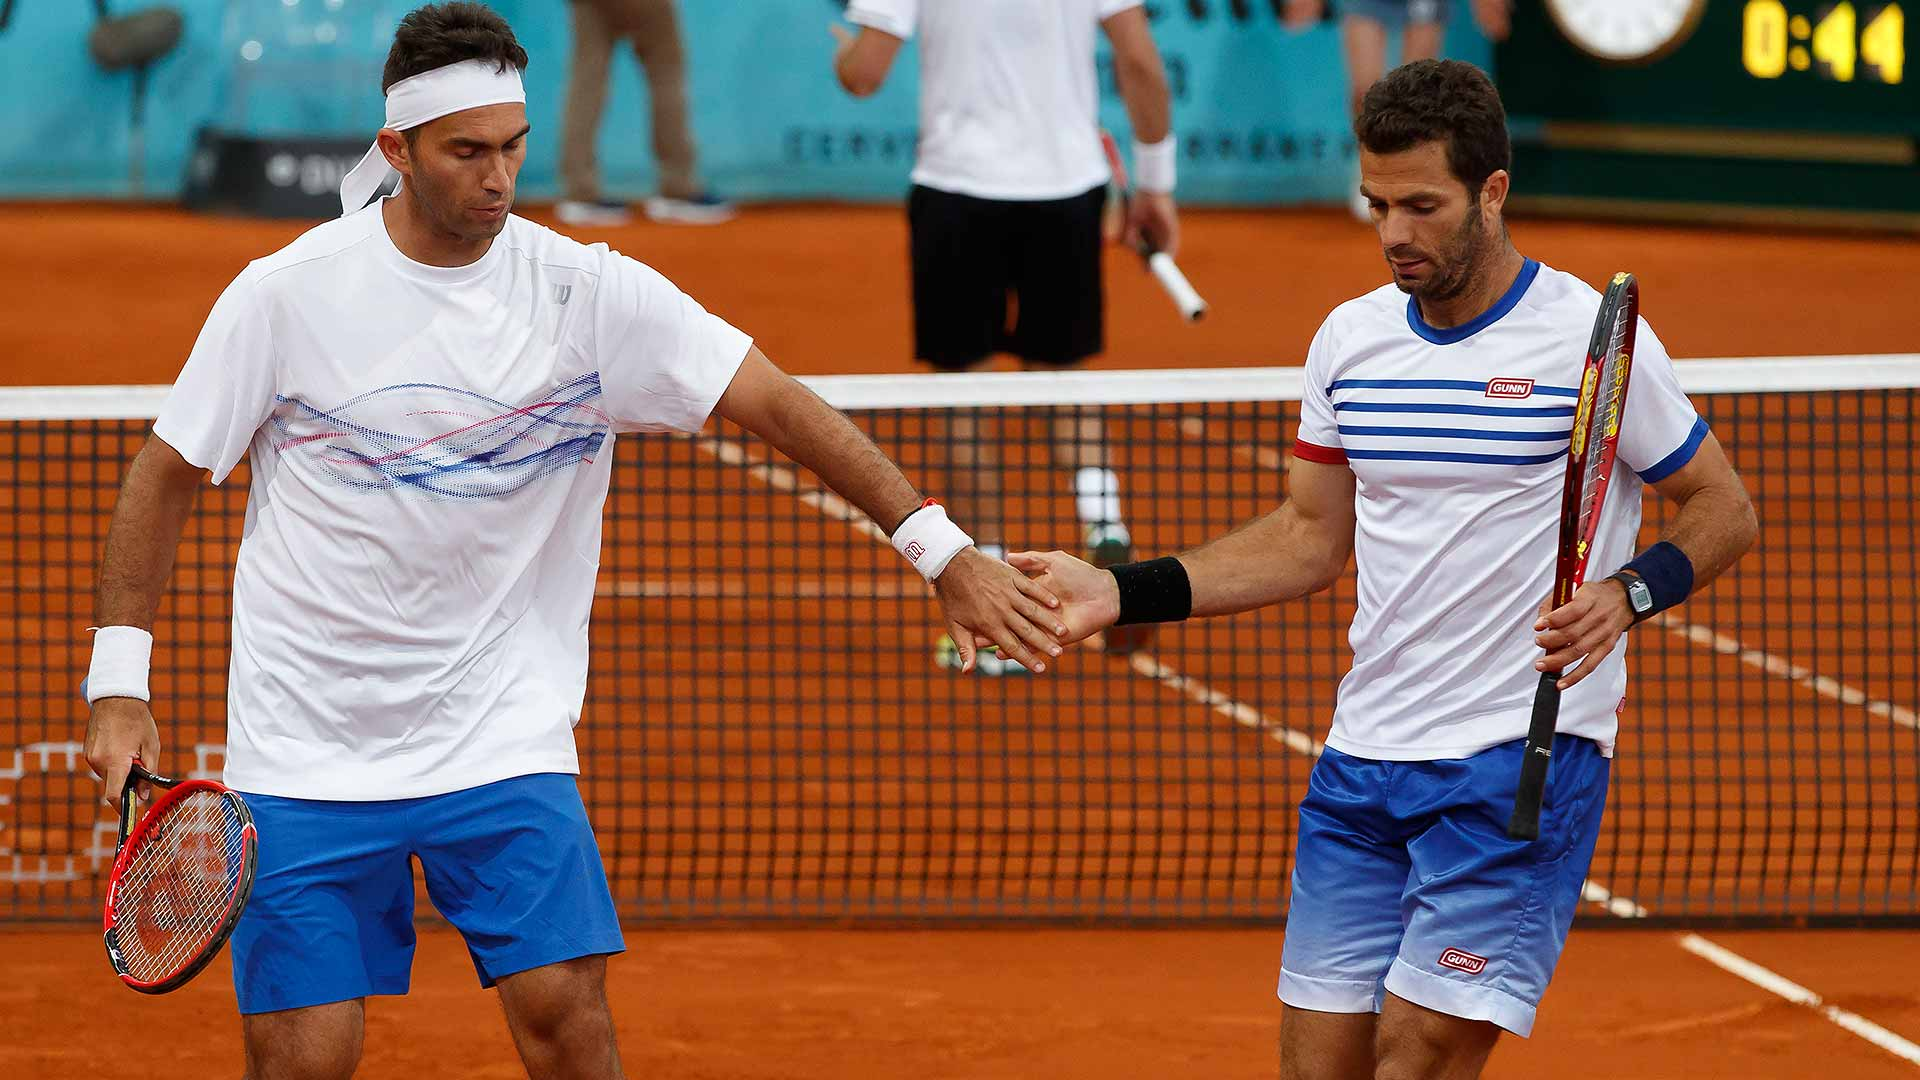 Horia Tecau and Jean-Julien Rojer will face top seeds Pierre-Hugues Herbert and Nicolas Mahut.